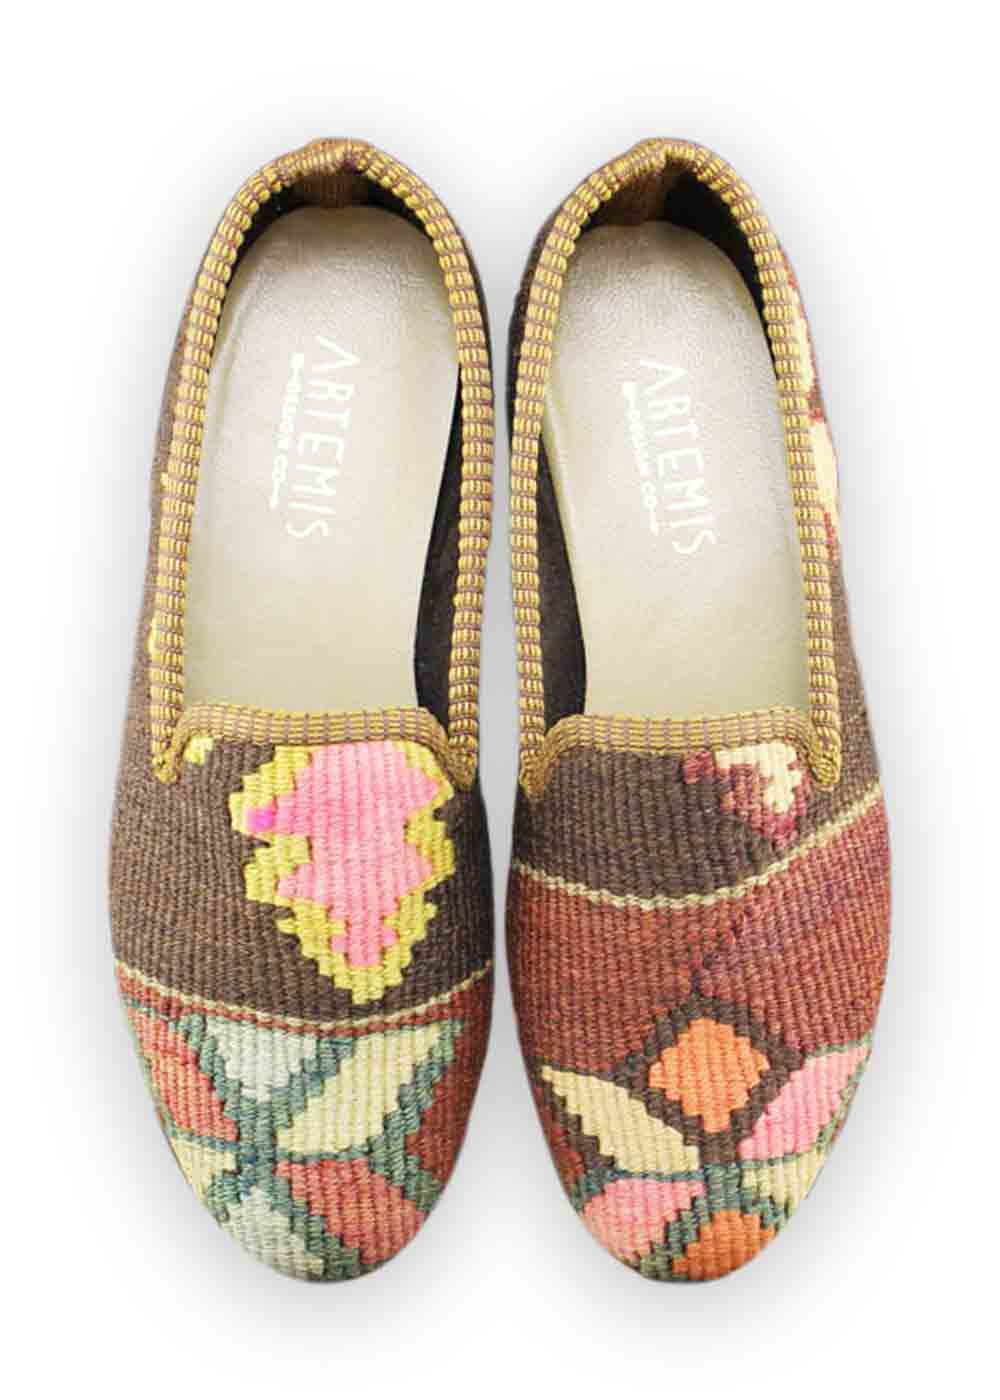 Archived Women's - Women's Kilim Smoking Shoes - Size 39 (US 9)